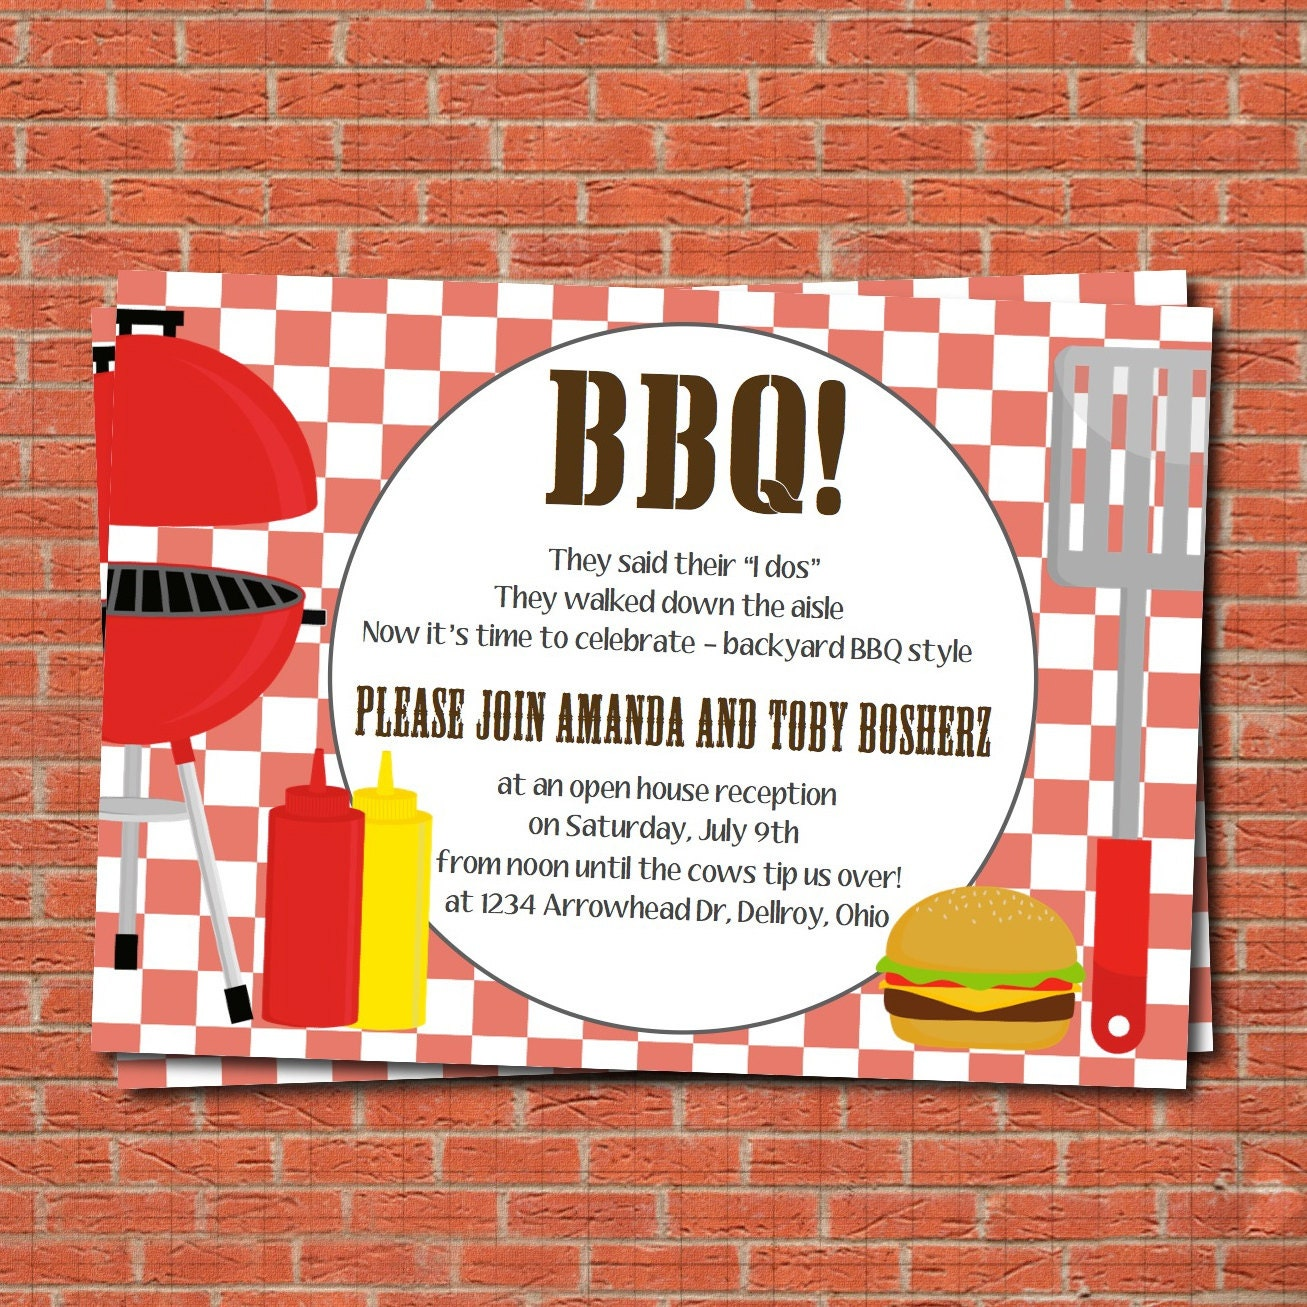 I Do Bbq Bbq Invitation Printable Bbq Party Invitation. Sample Of Cover Motivation Letter Example. Real Estate Agent Resume Sample. Weight Loss Percentage Excel Template. Christmas Message For Boyfriend Abroad. Excel Membership Database Template. Resume For Fast Food Restaurant Template. Strategic Business Development Plan Template. Sample Resume For Quality Control Template